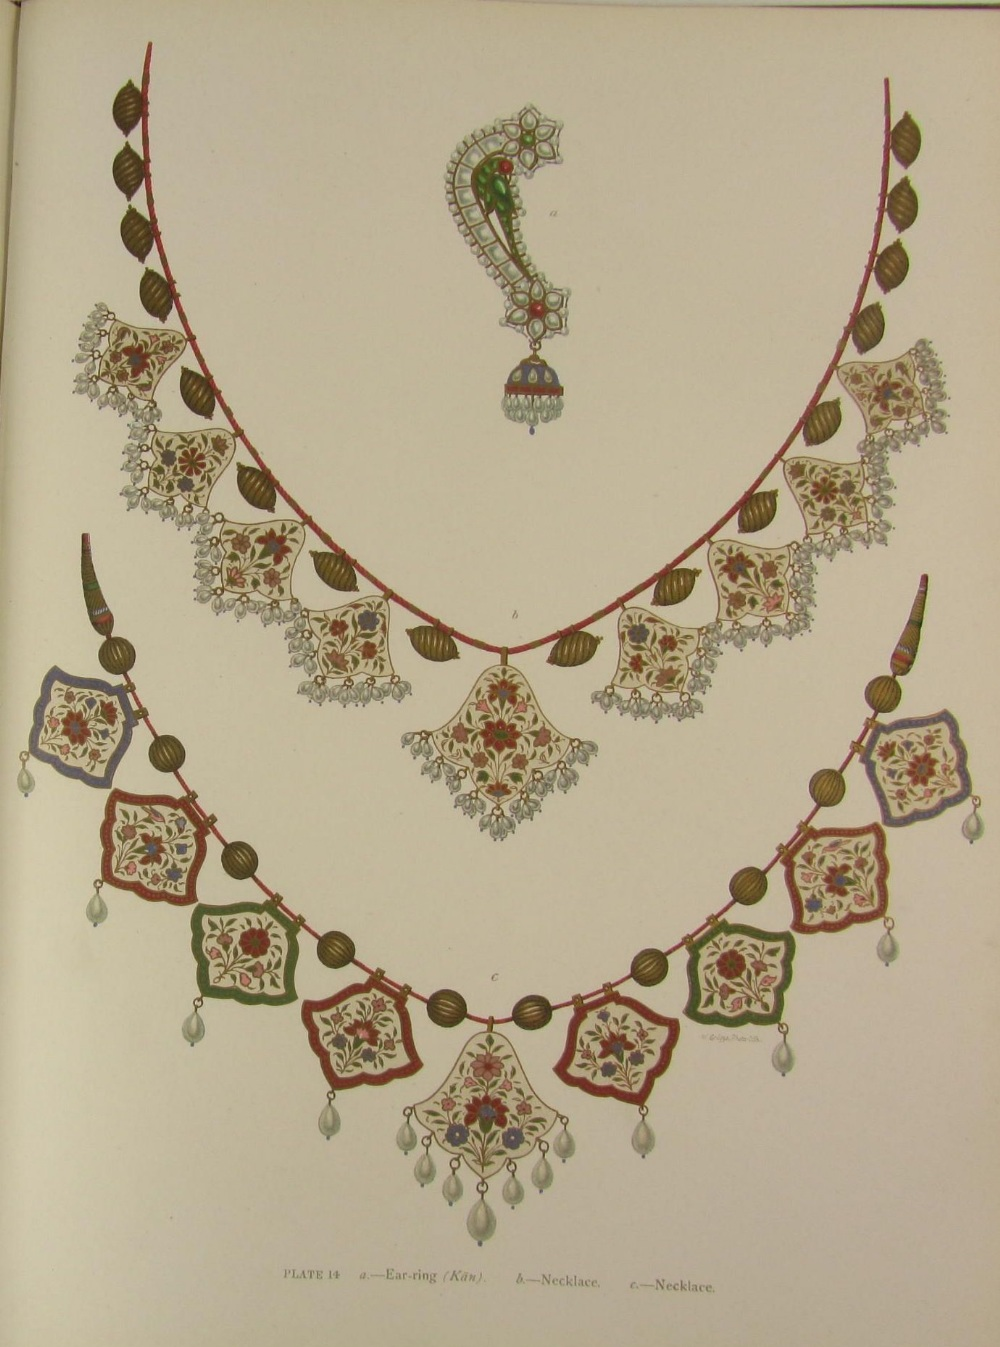 Earring and two necklaces. Plate 14.